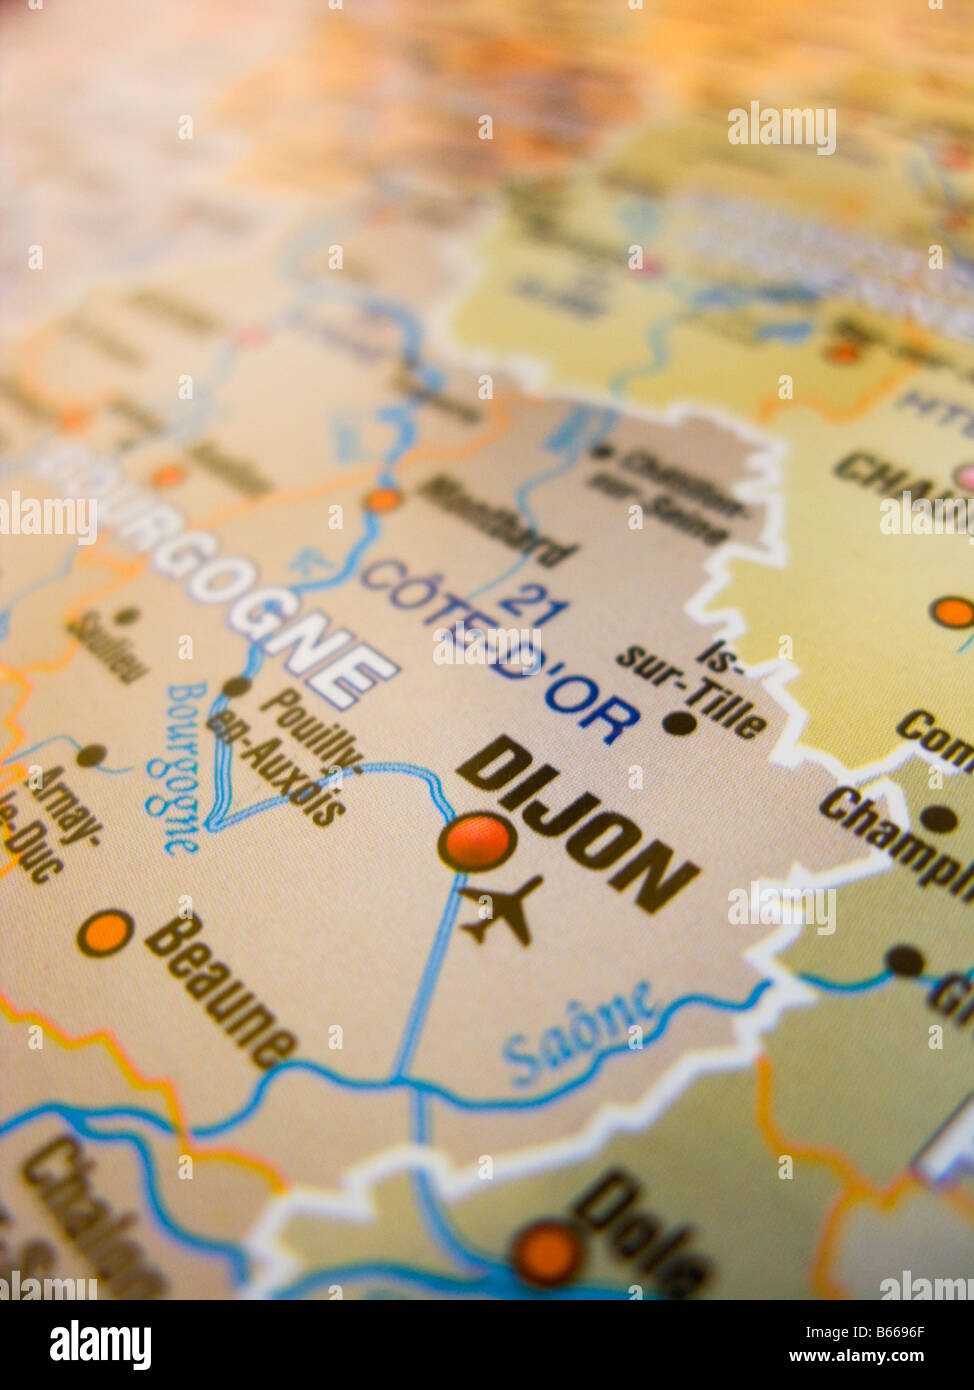 Map of France showing Dijon and its surrounding areas Stock Photo